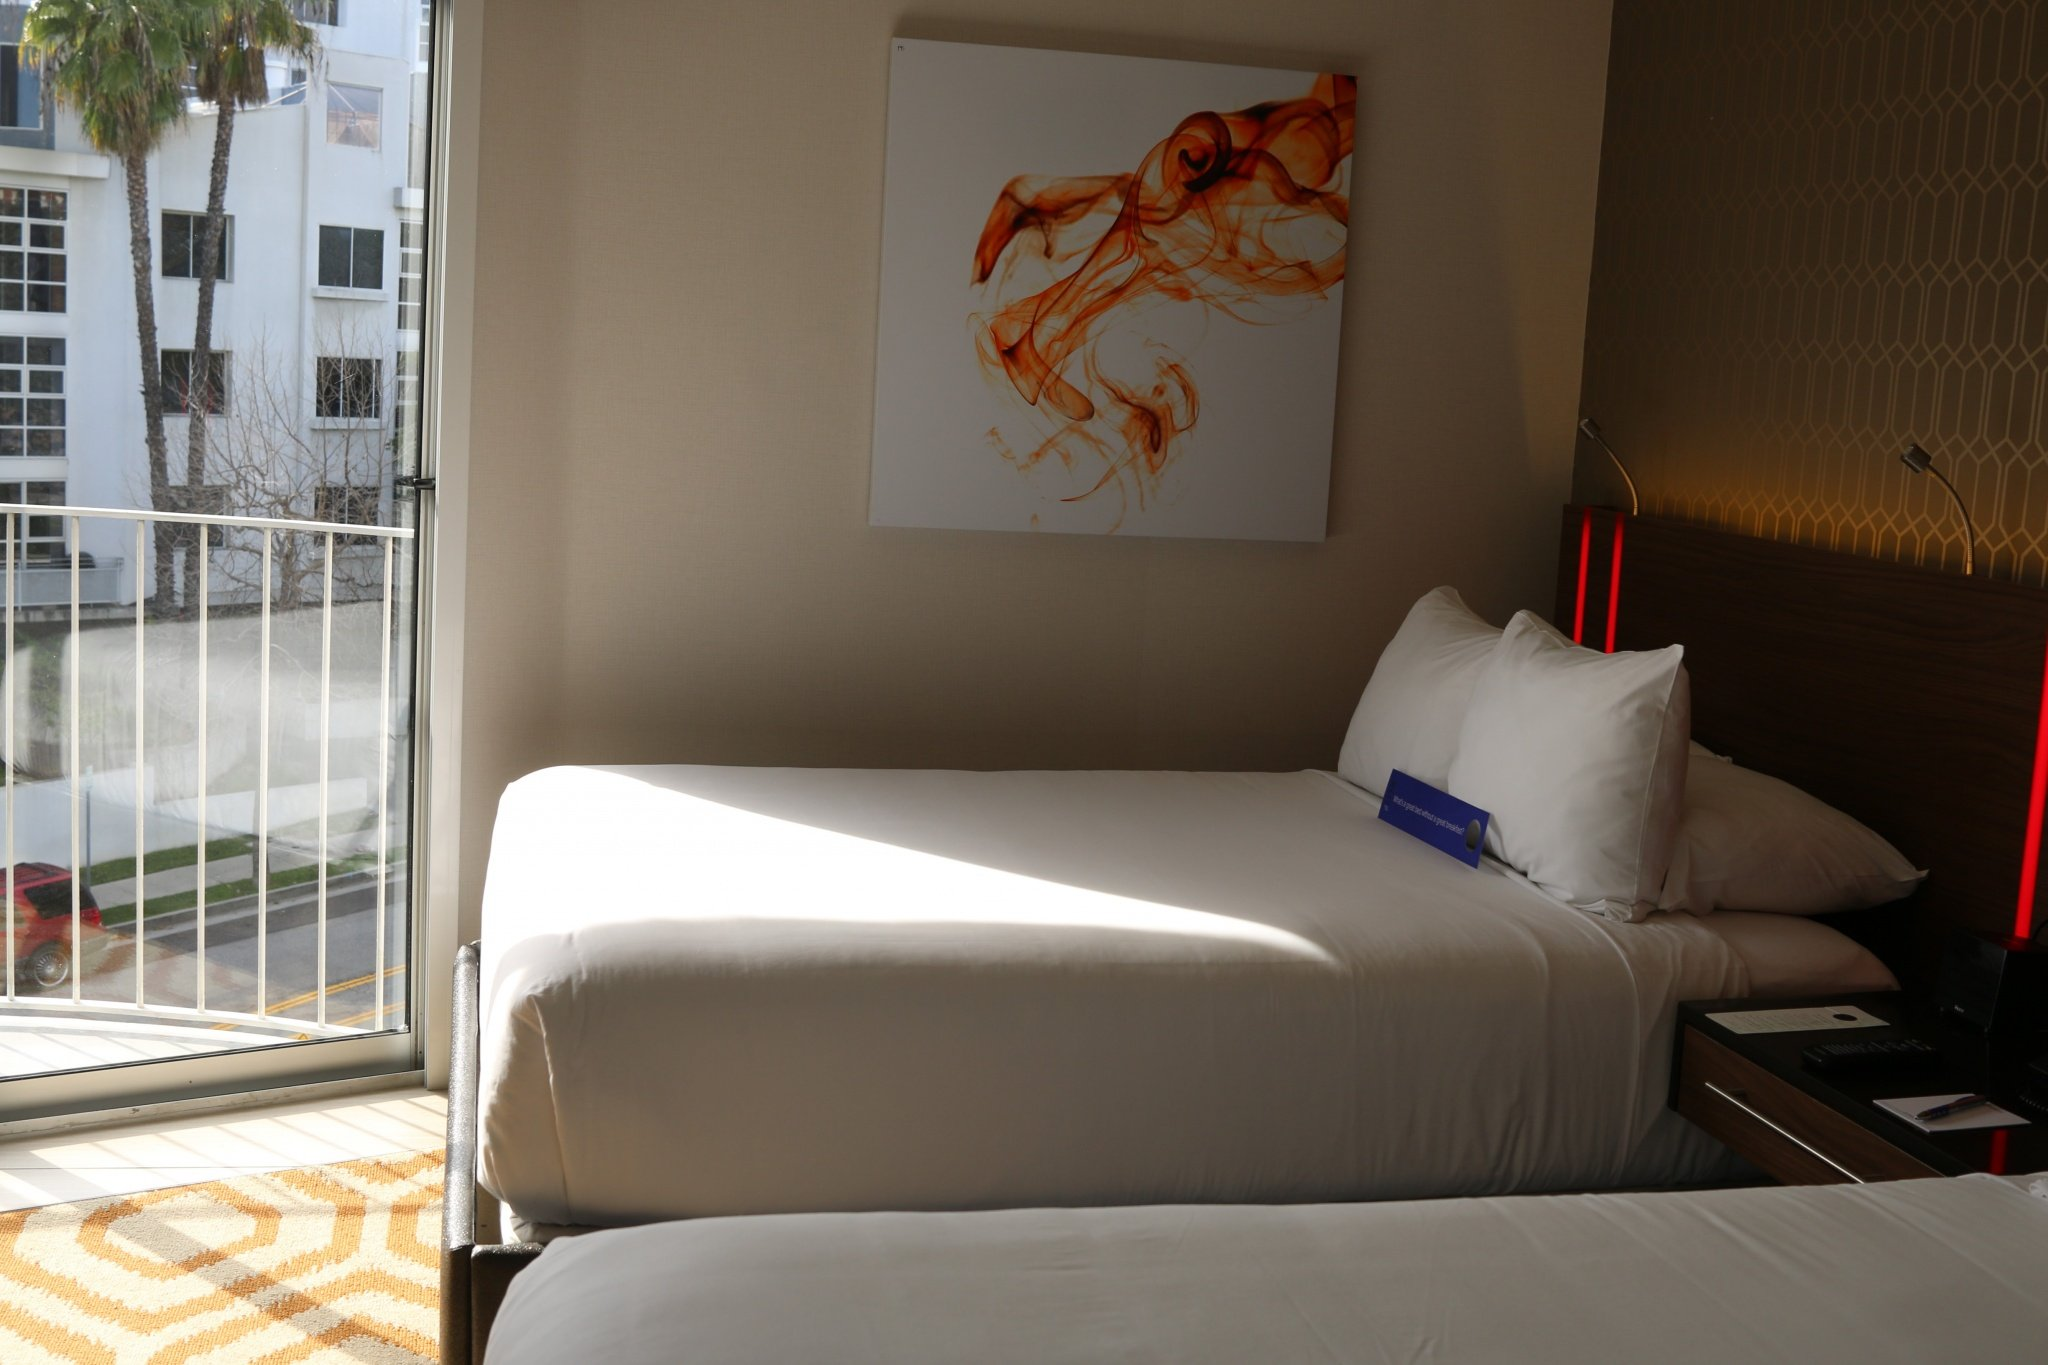 Where To Stay Near UCLA: Hotel Angeleno - Ginger Marie